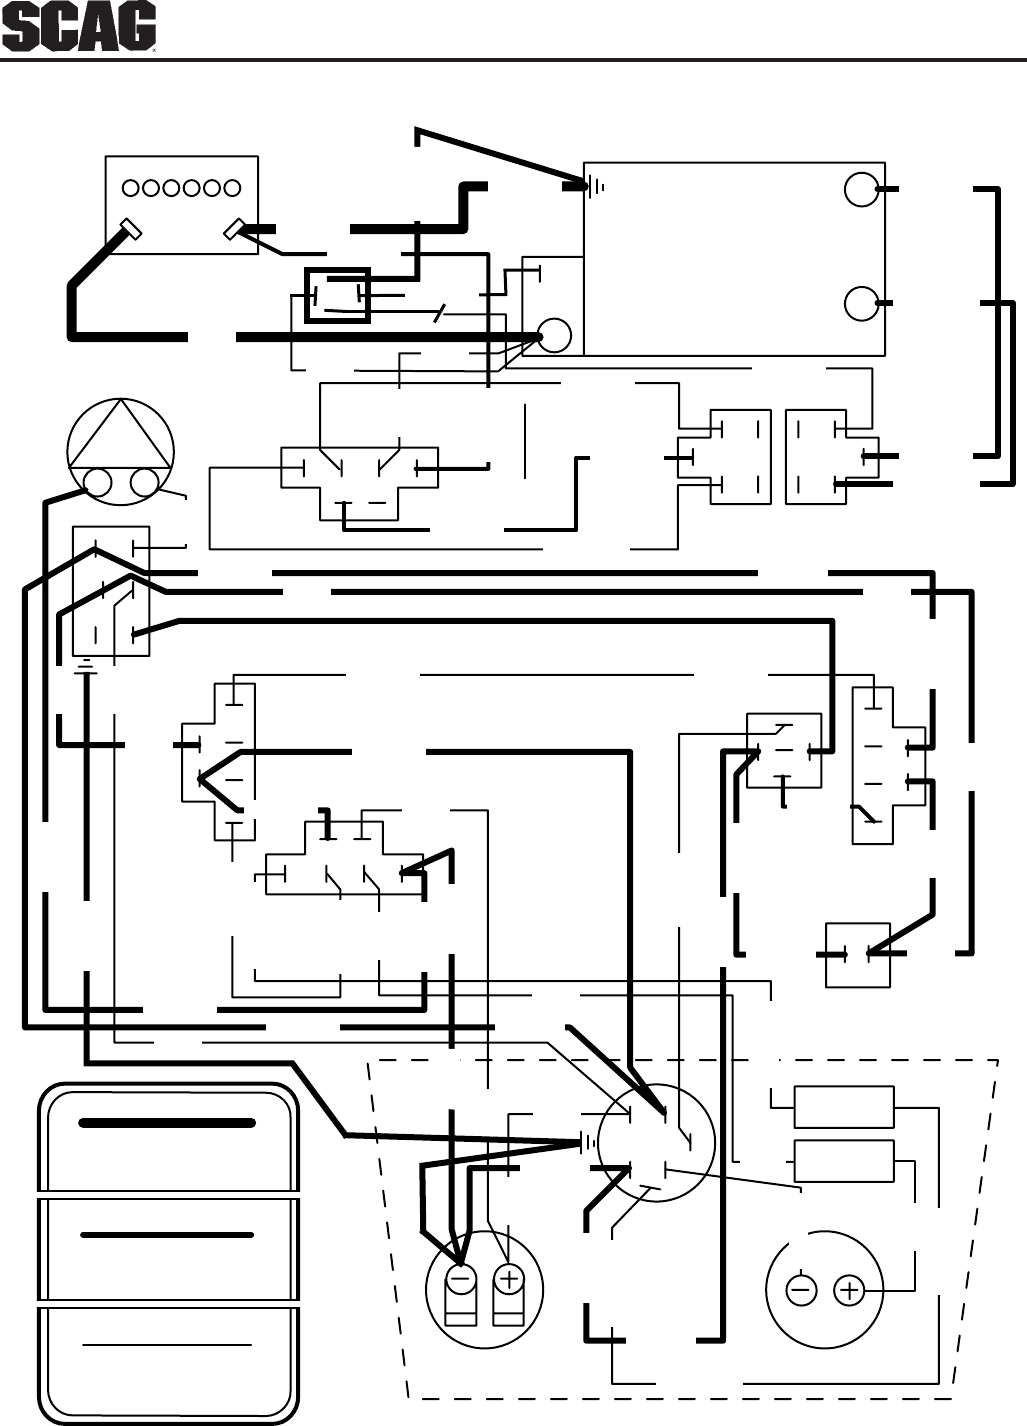 b9ce615b 020e 4d78 97db 0a4906c05276 bg22 scag wiring diagram on scag images free download wiring diagrams  at panicattacktreatment.co